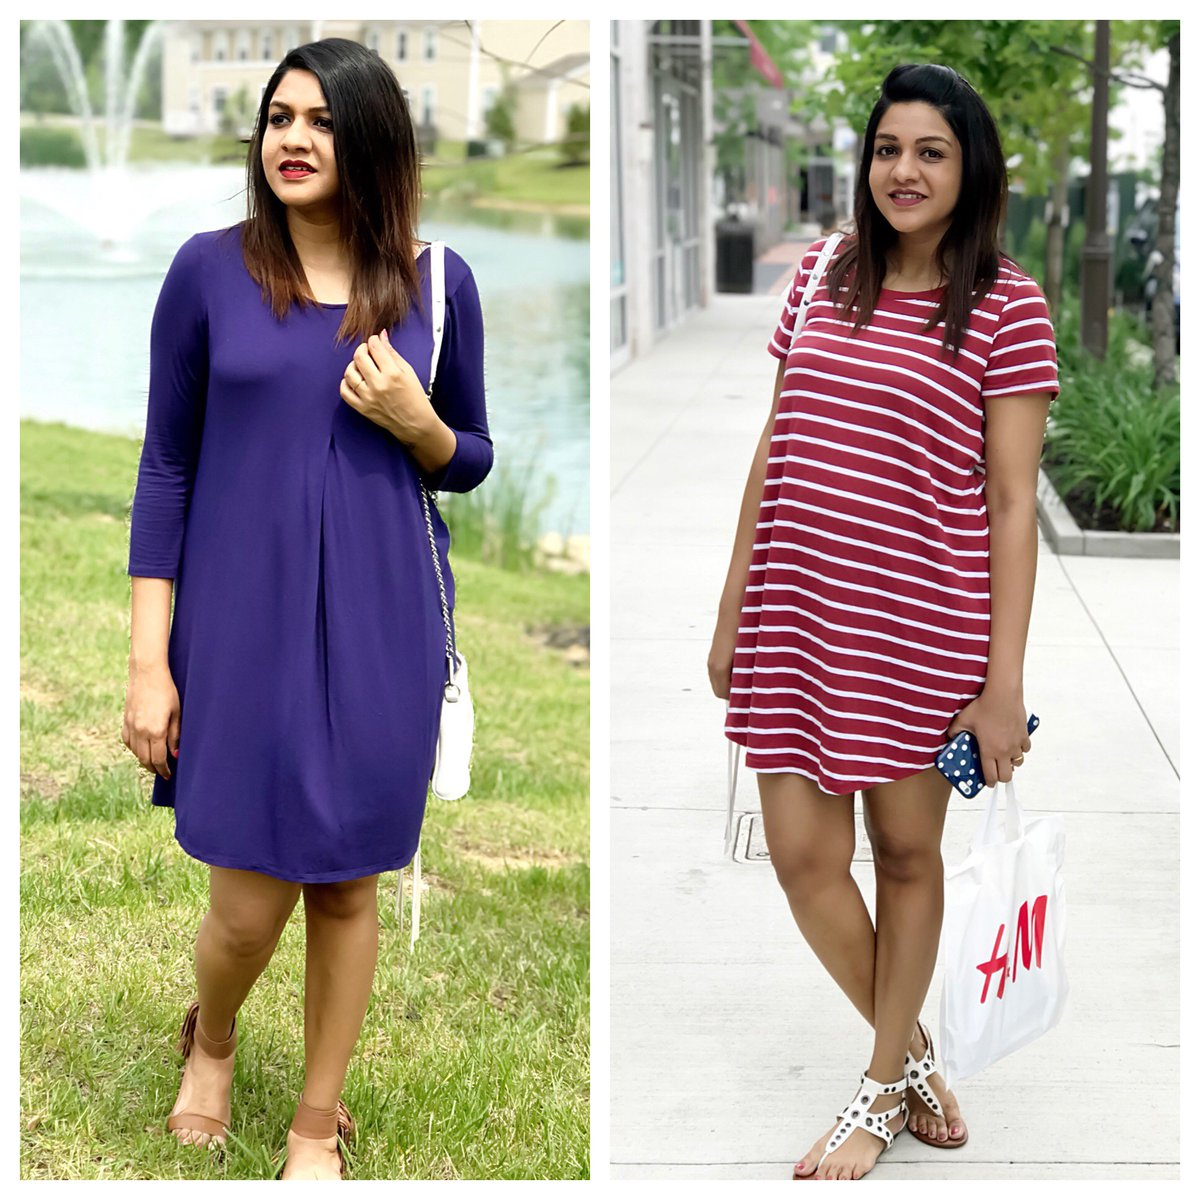 Weekends In My Closet - Pregnancy Outfits  http://www. kittyslifestyle.com/2017/05/weeken d-in-my-closet-pregnancy-outfits.html &nbsp; …  #pregnancy #pregnant #blogger #blog #blogpost #fashionblogger #outfit<br>http://pic.twitter.com/iWa8rlSiDS